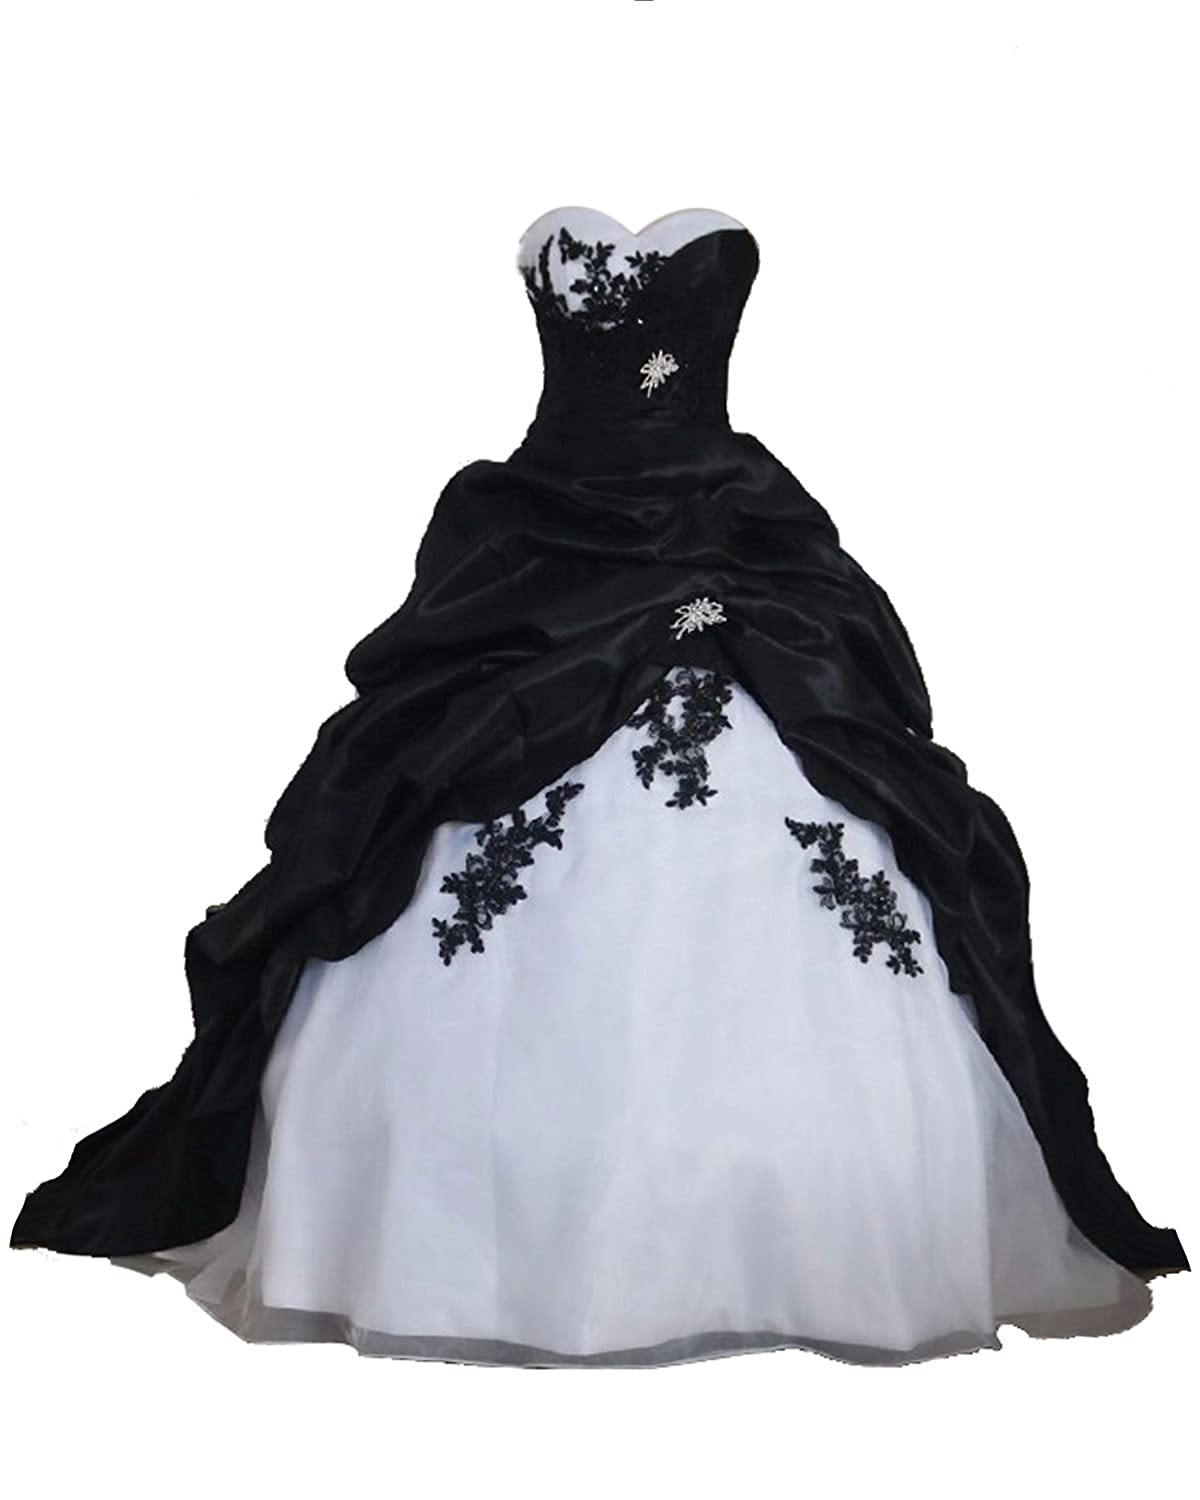 Red Wedding Dresses.Babygirls Black Red And White Wedding Dress For Bride 2019 Sweetheart With Train Plus Size Bride Gowns Women